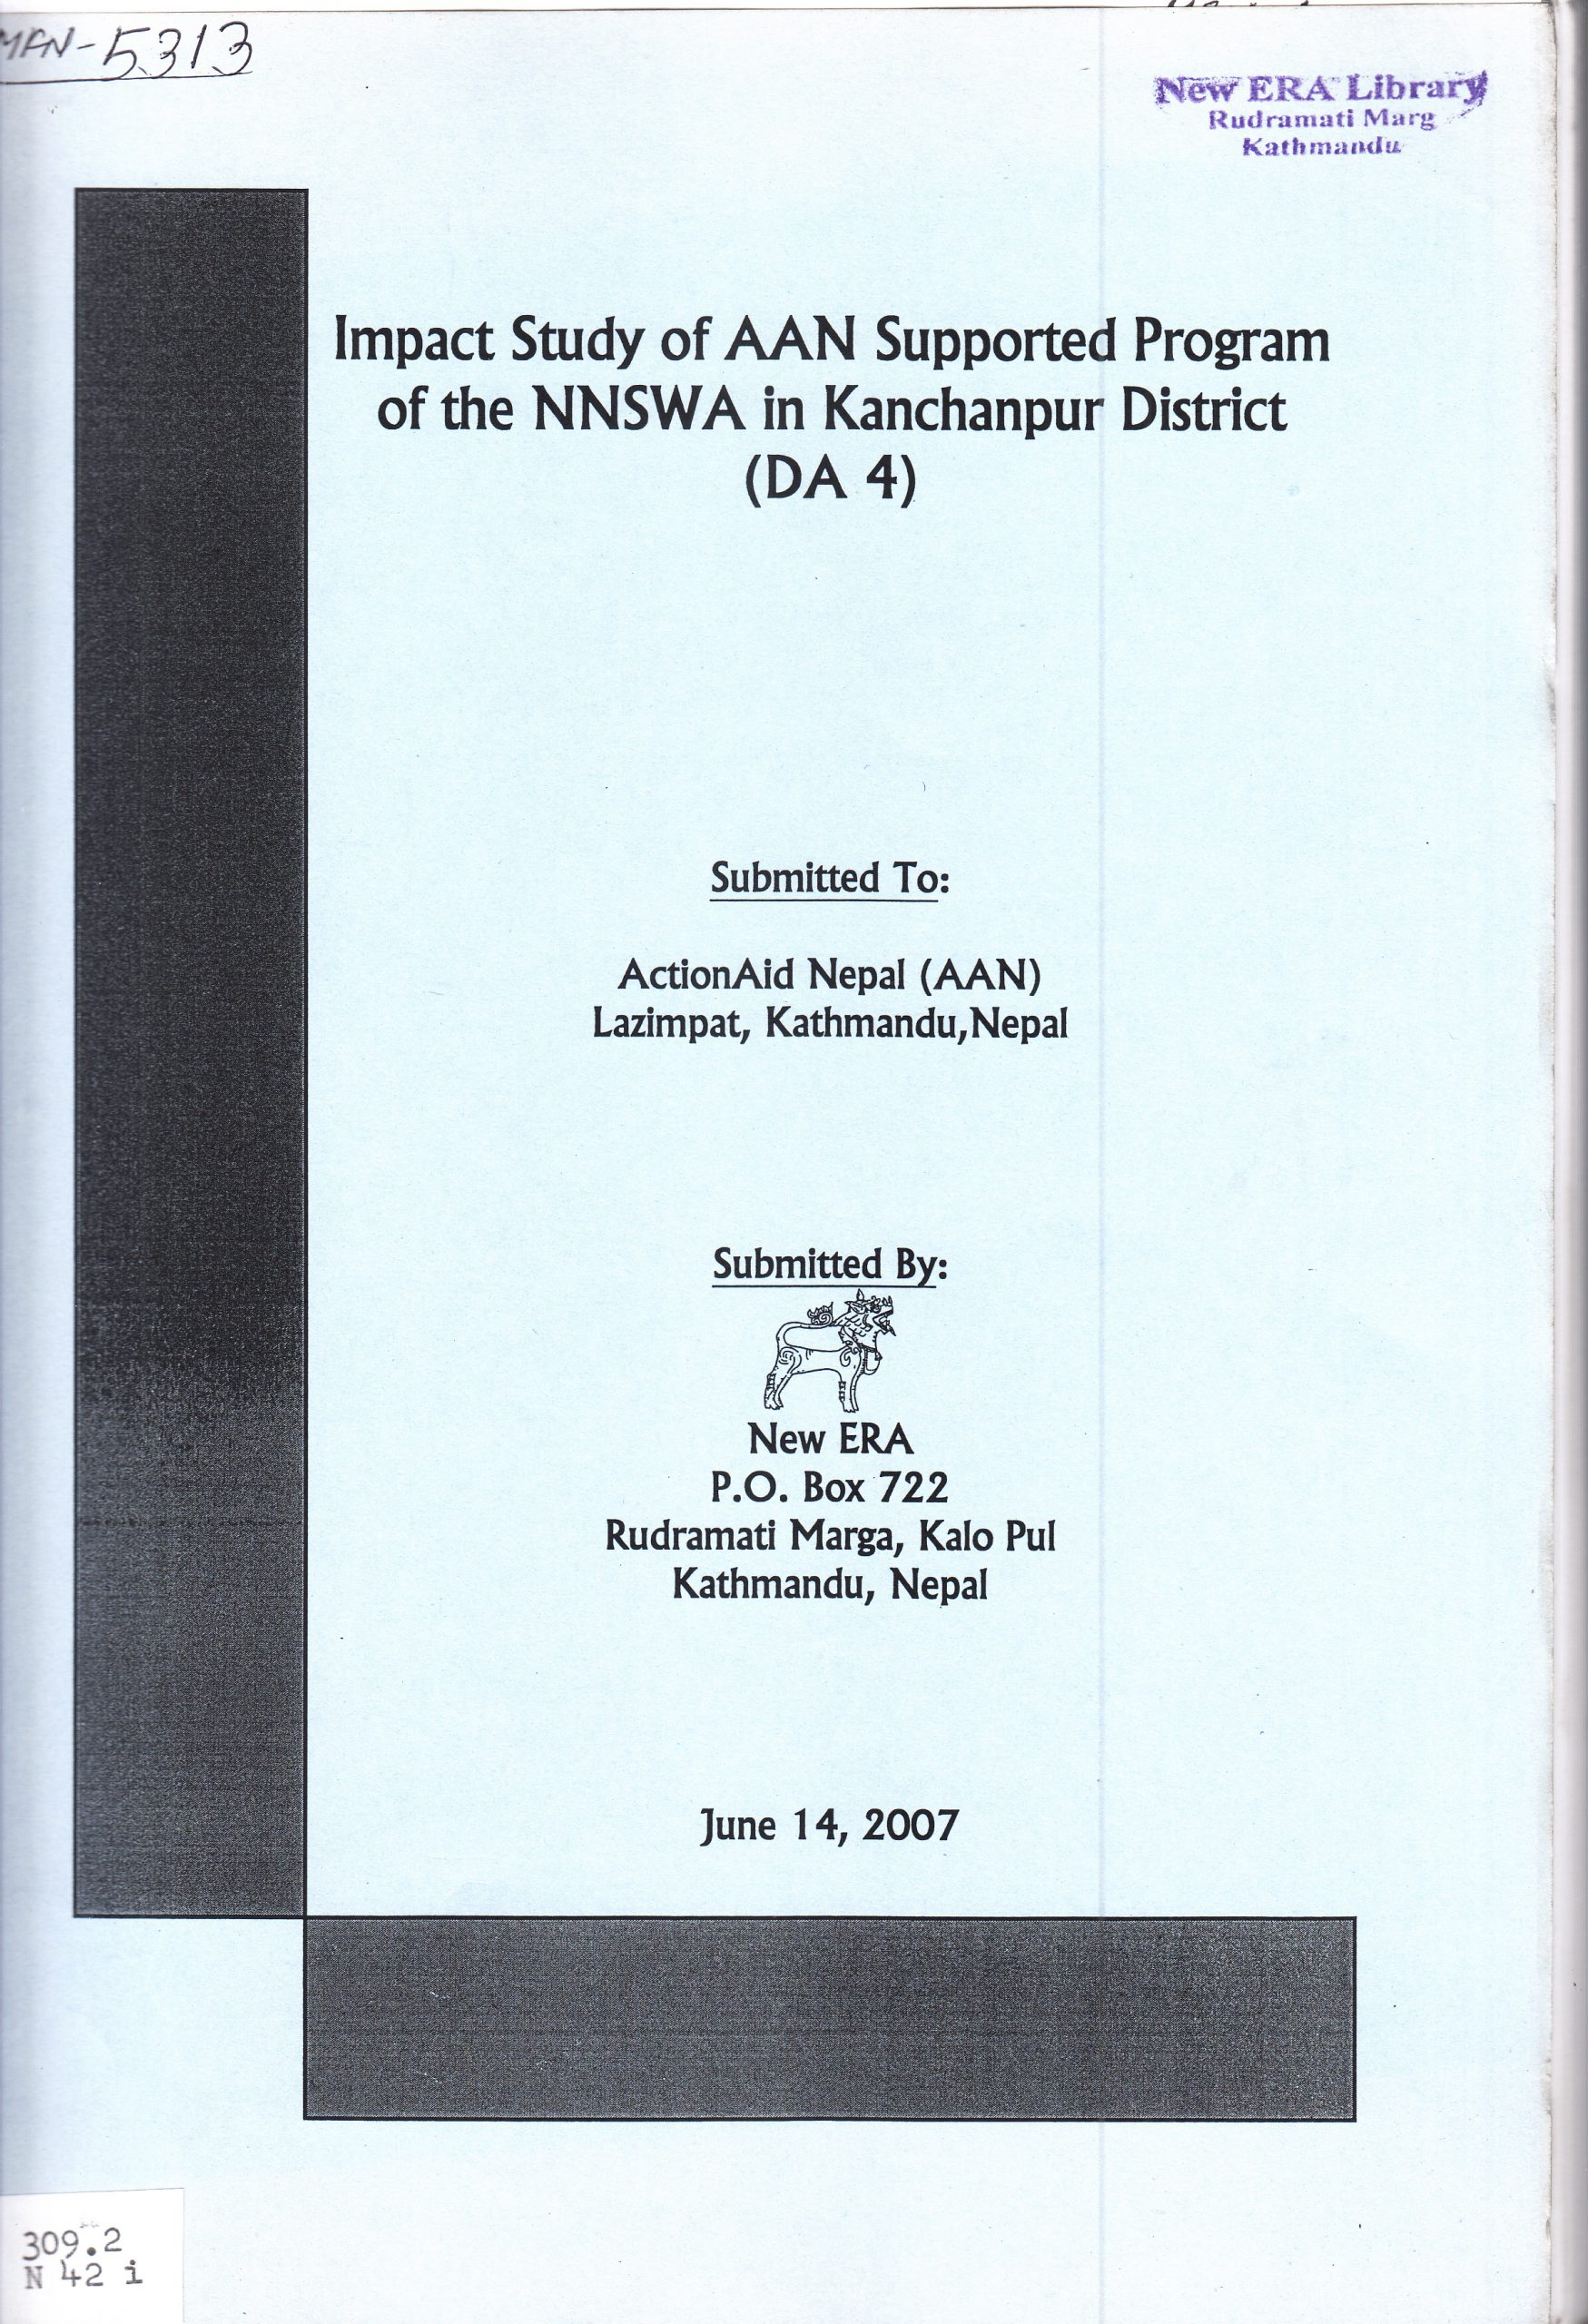 Impact Study of AAN Supported Program of the NNSWA in Kanchanpur District (DA4)